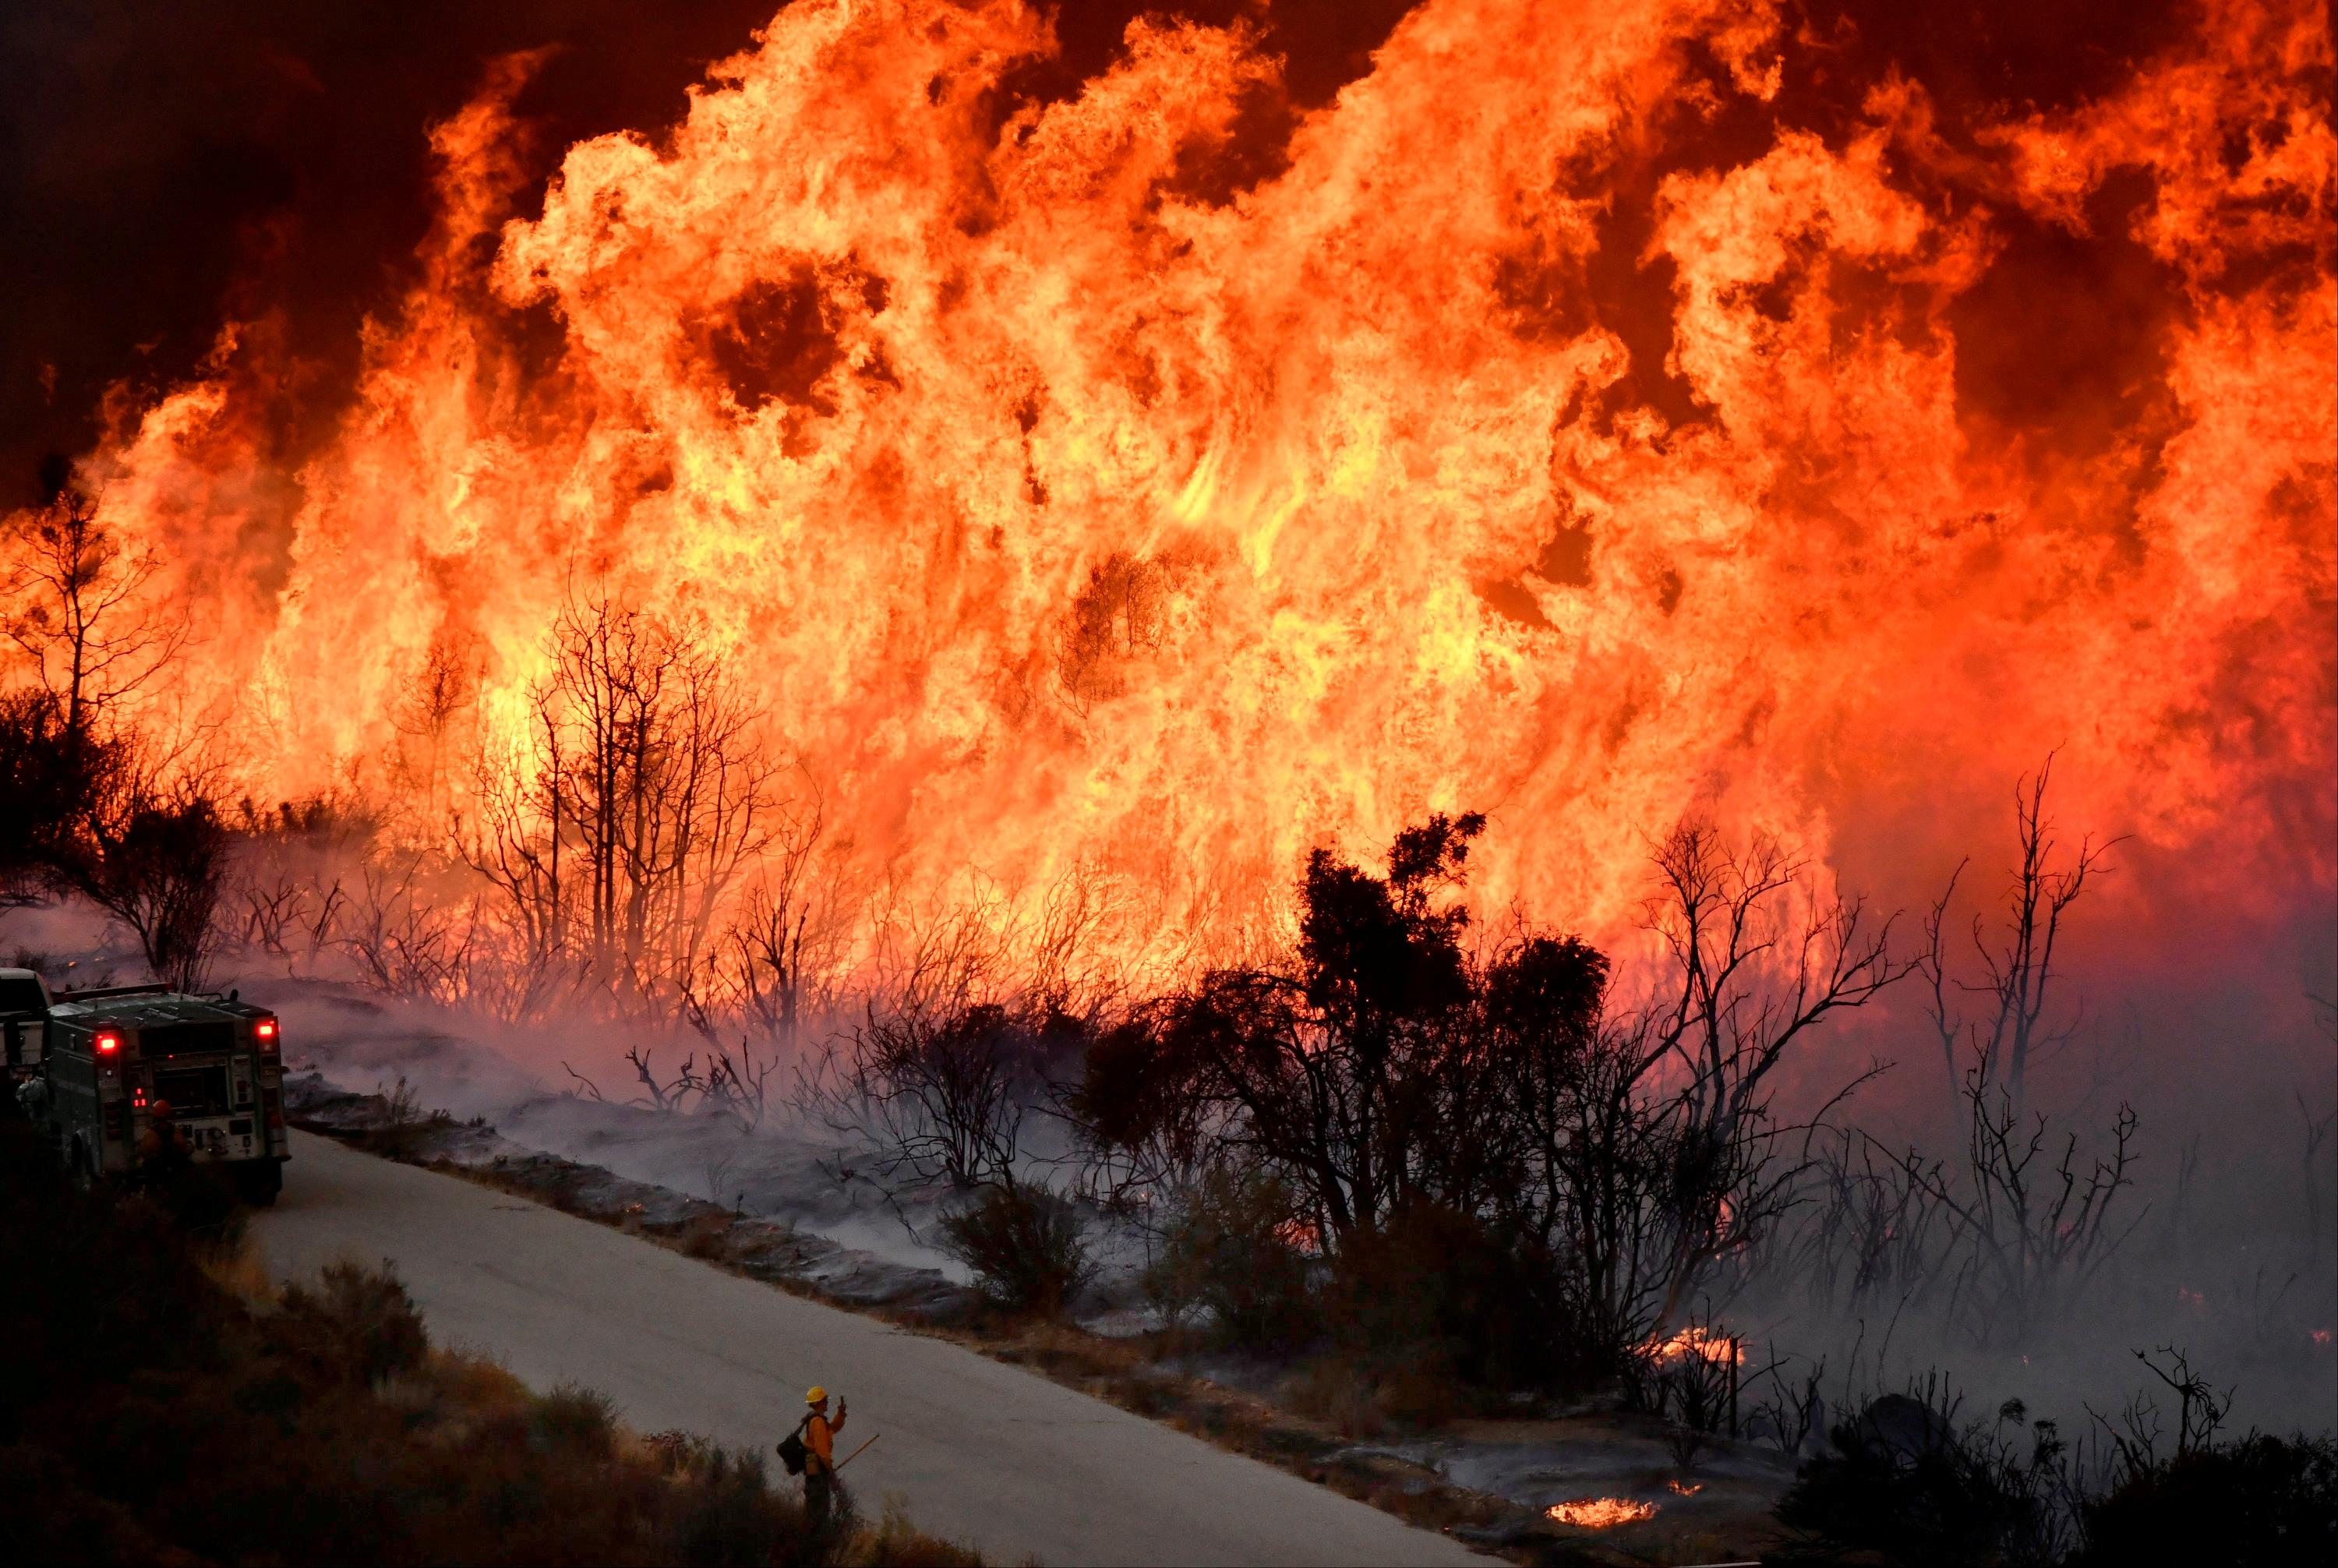 Brush fire destroys homes in San Diego County, California; Hundreds evacuated